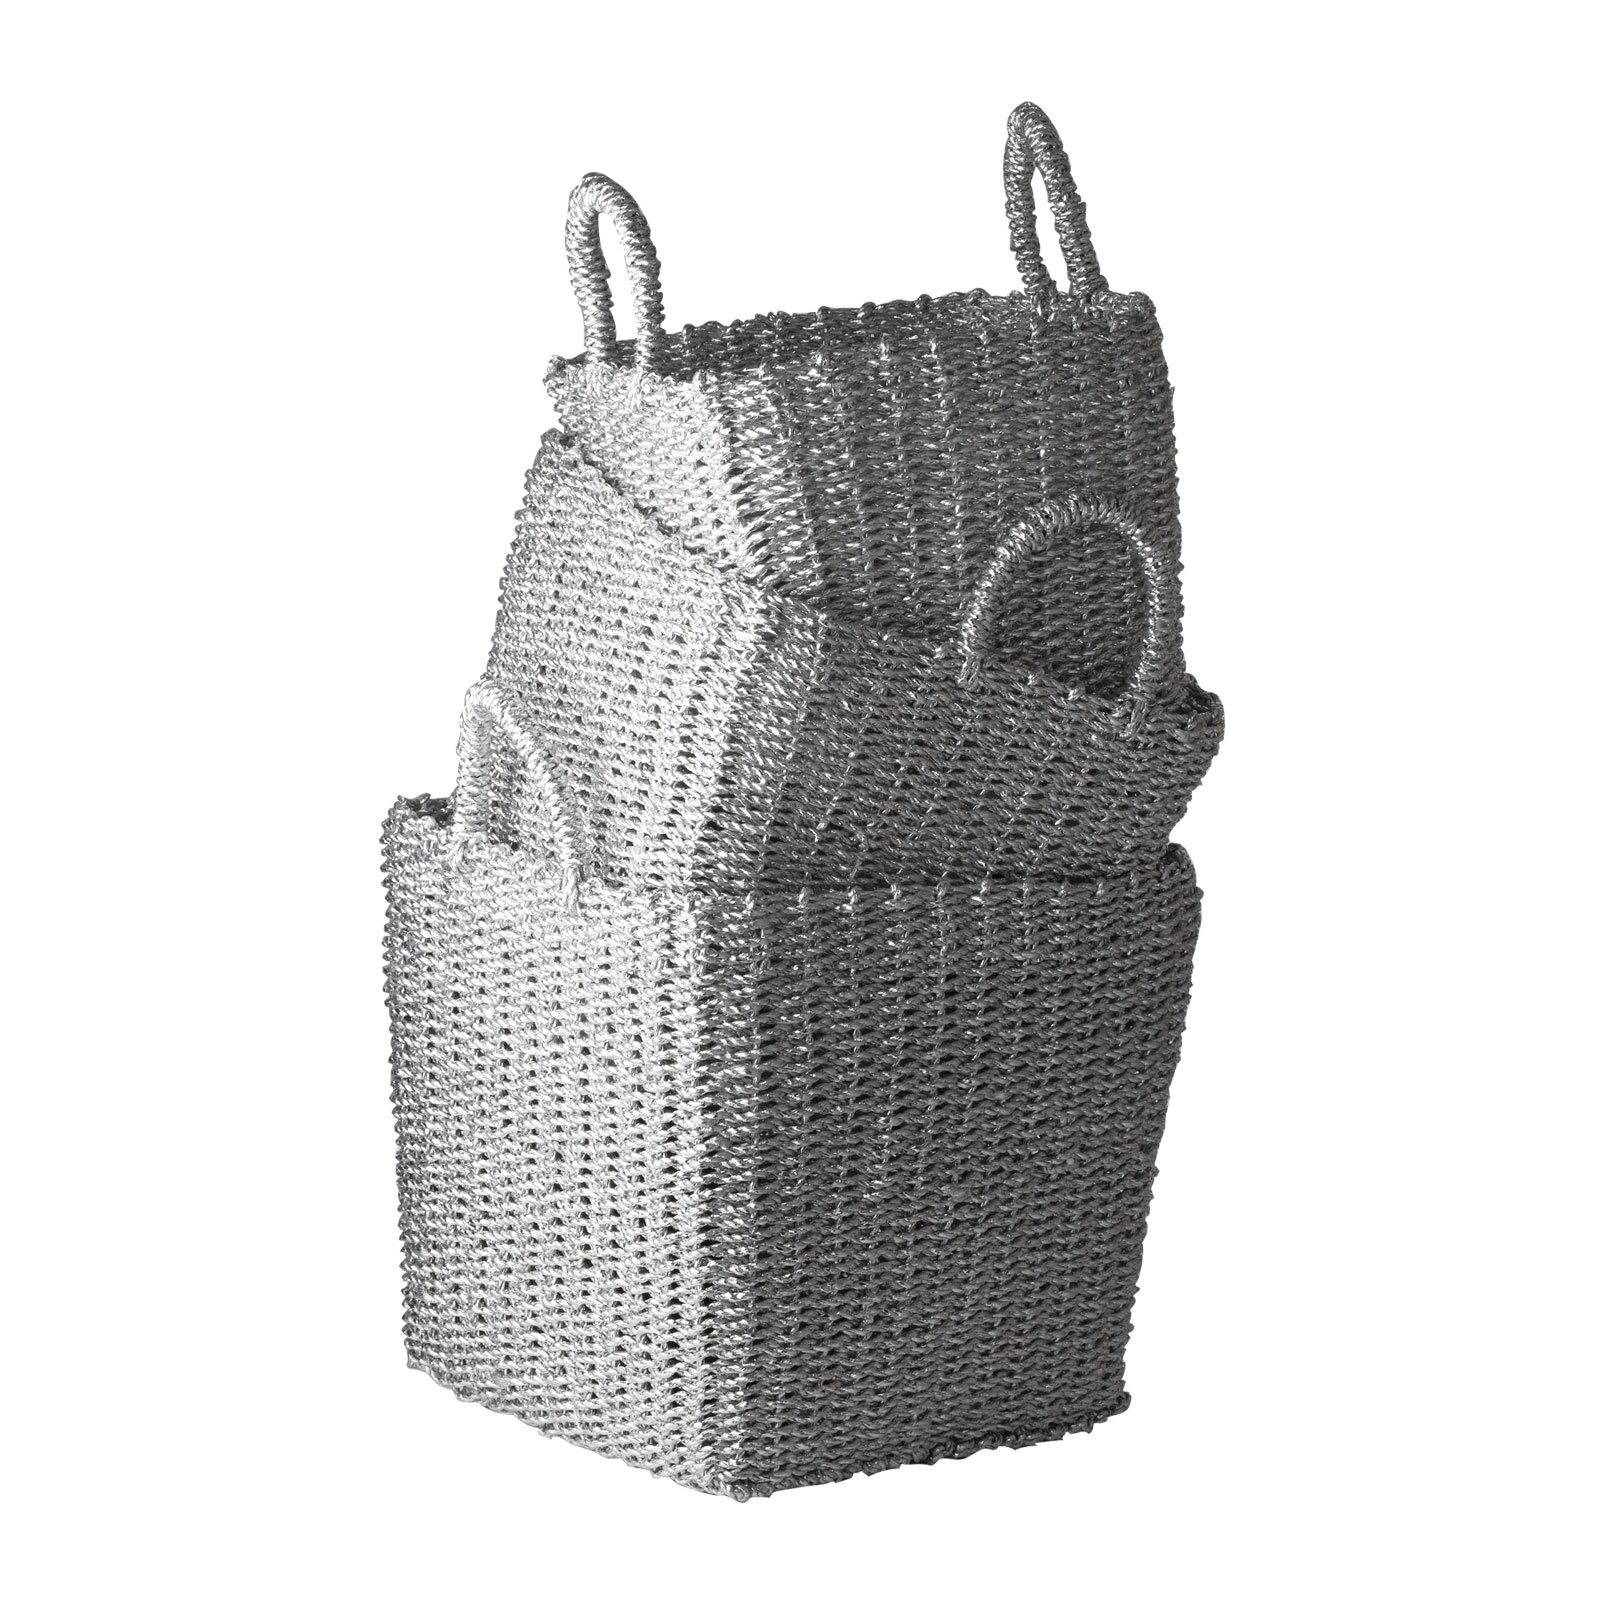 Lazy Susan S/3 Nested Recycled Twisted Silver Foil Baskets X-810487 at Sears.com